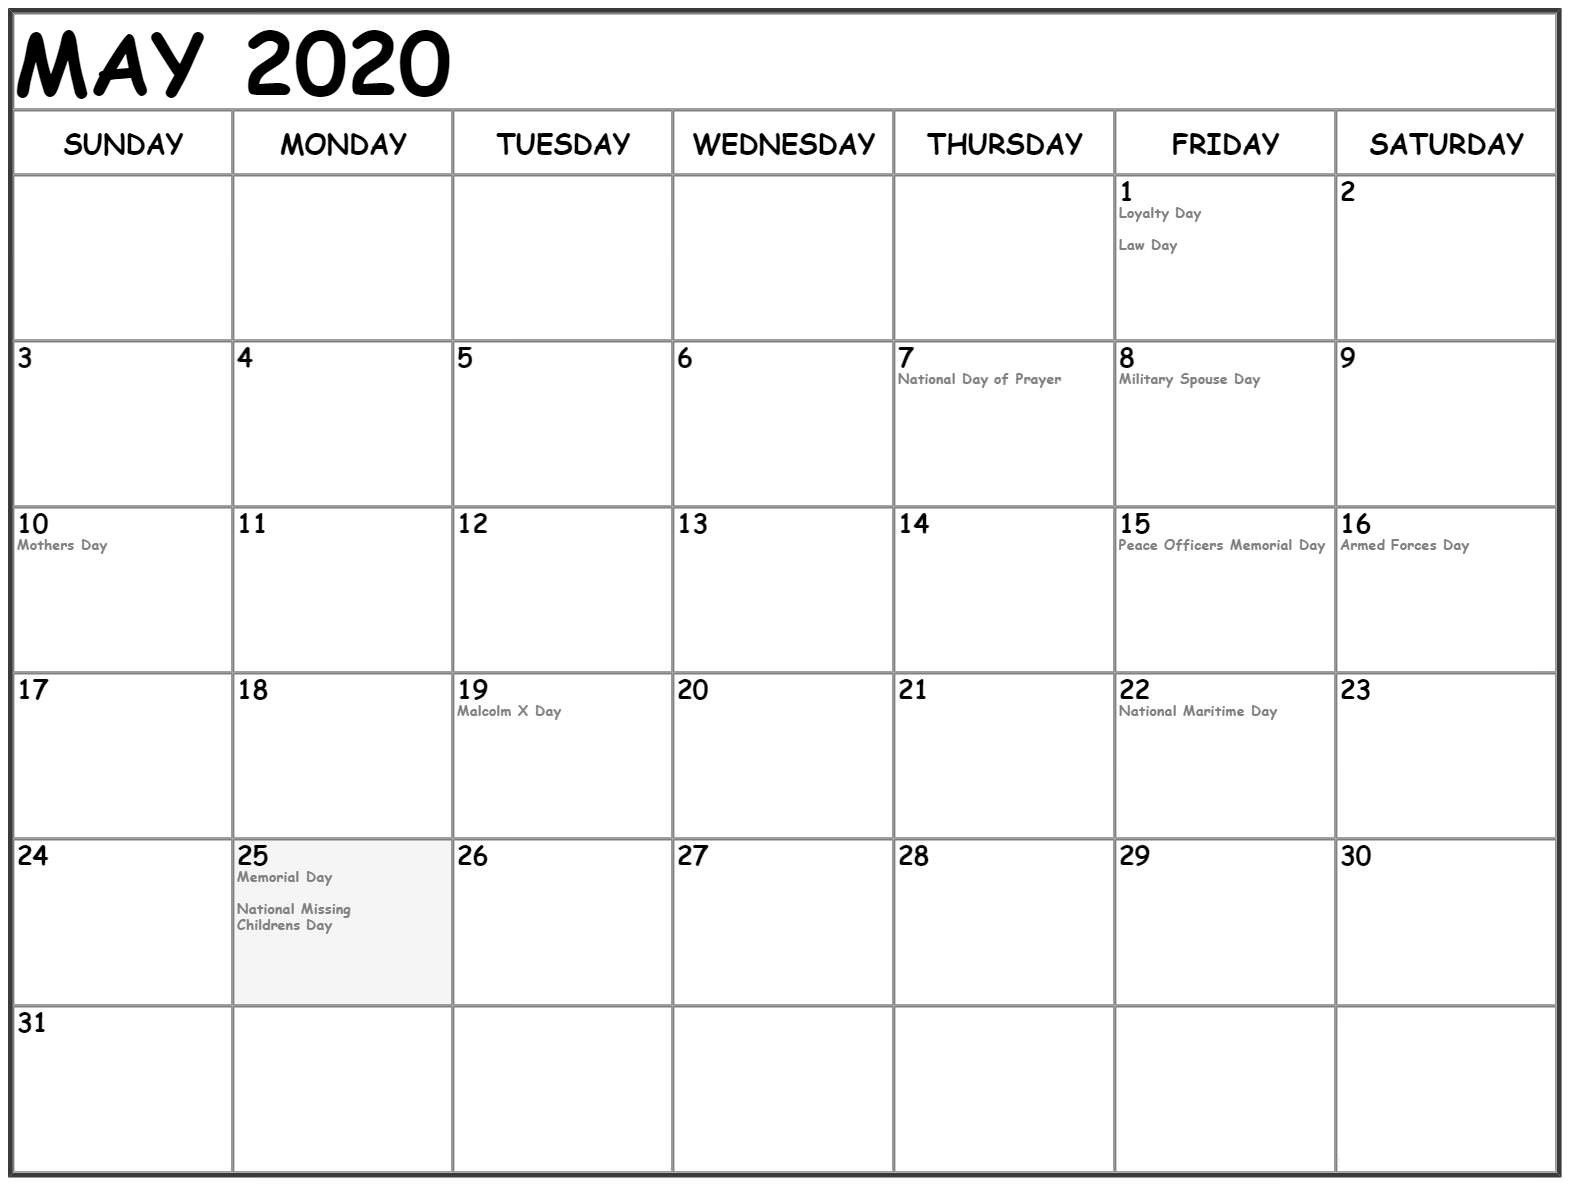 Printable Calendar May 2020 Monthly Blank Template - Free with regard to Legal Size Printable Monthly Calendar 2020